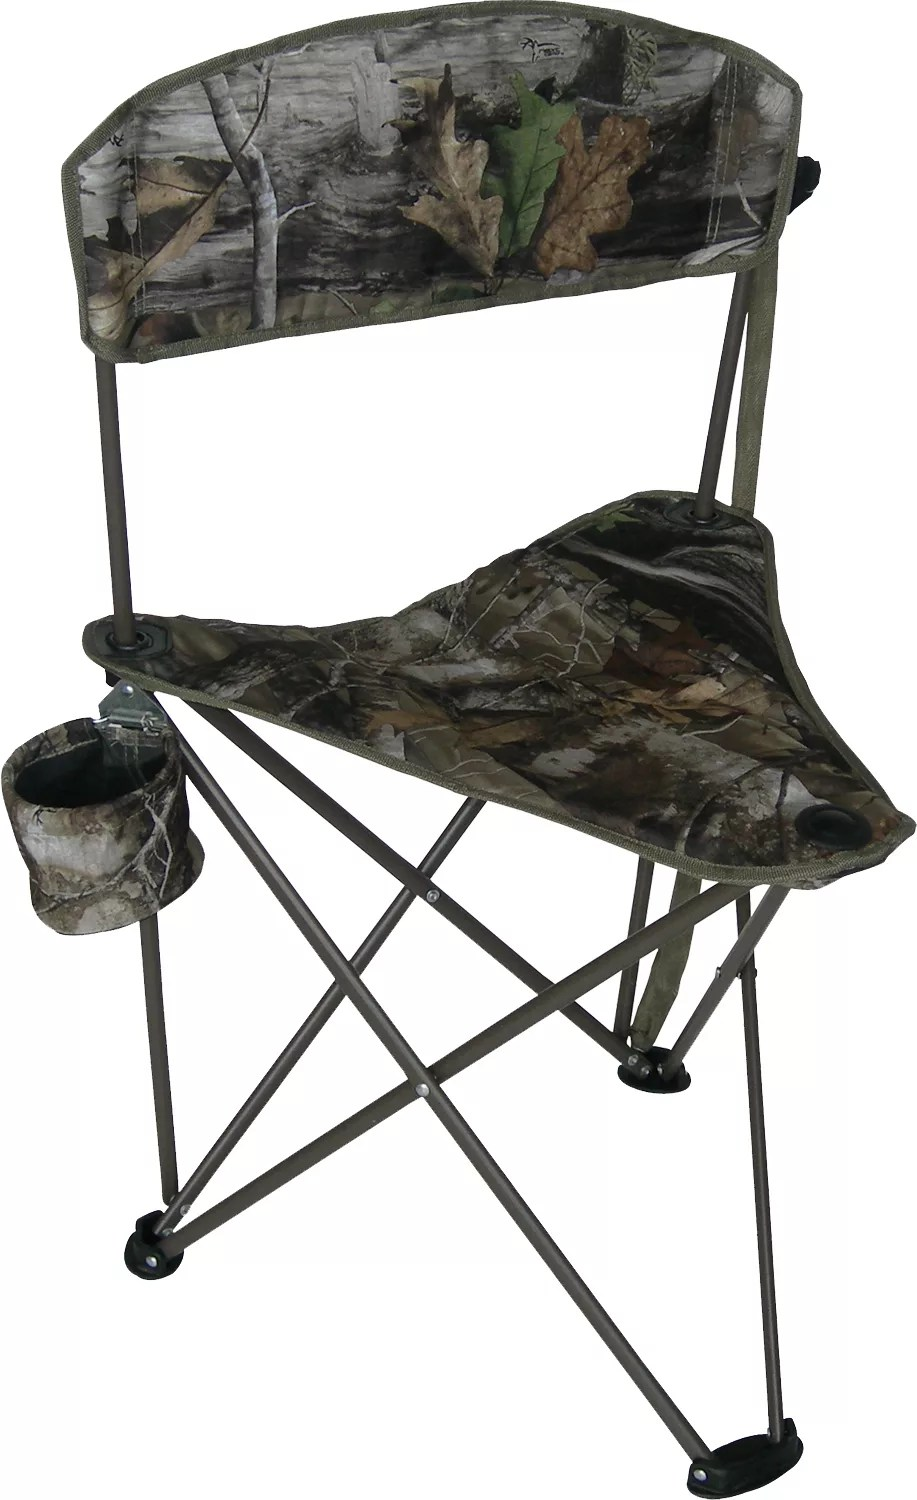 hunting seats and chairs sling lounge chair outdoor blind stools best price guarantee product image mac sports portable tripod camo